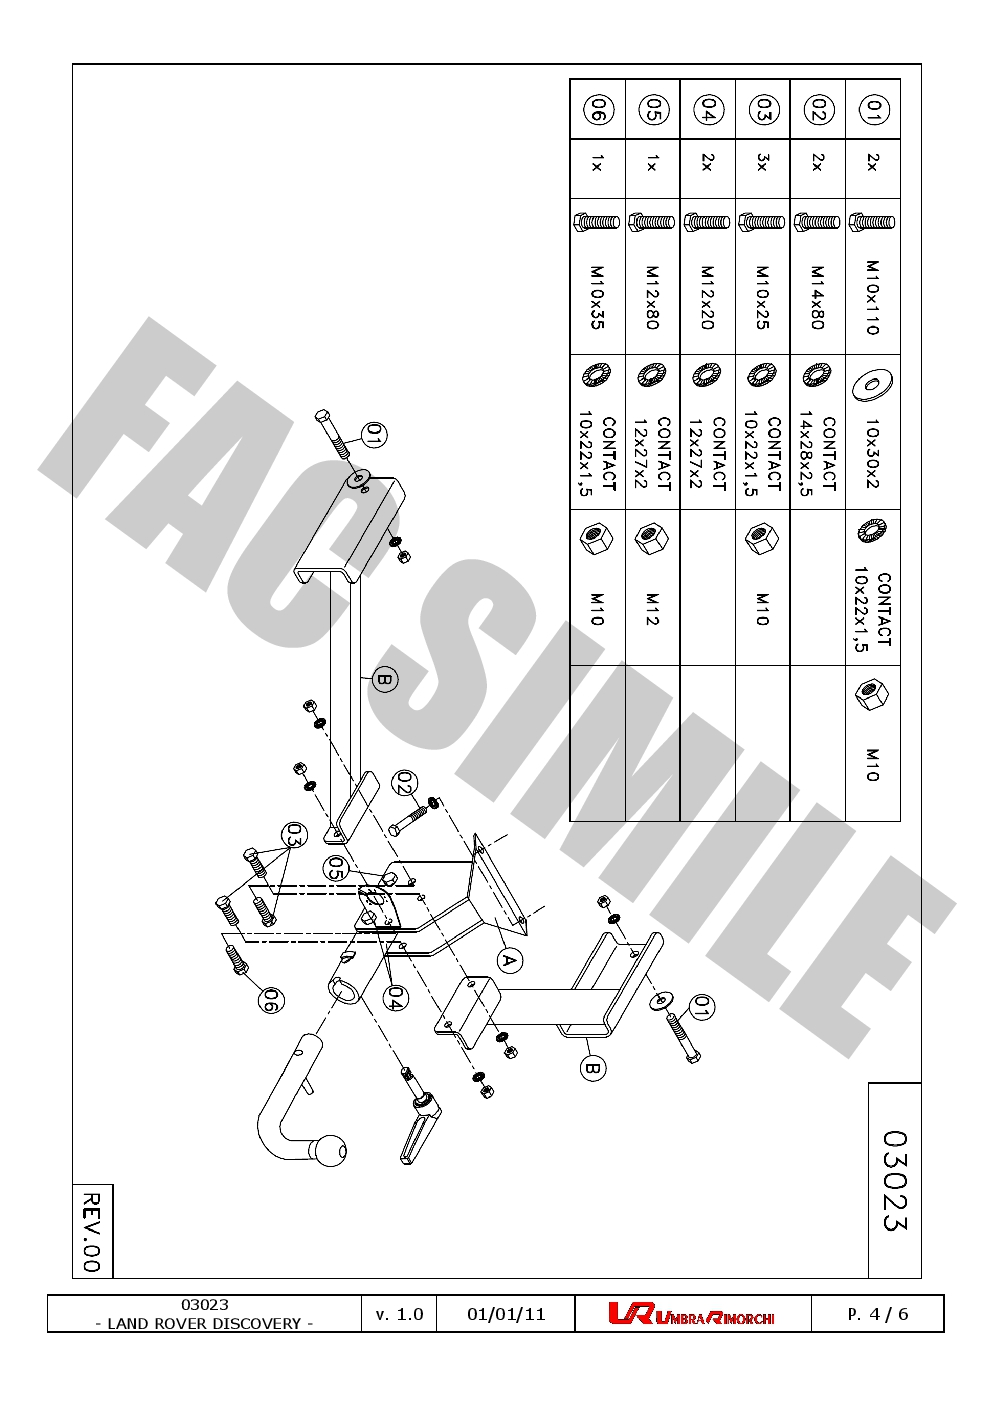 7 Pin Electrics for Rover Discovery II 98-04 03023//F/_H2 Fixed Swan Neck Towbar